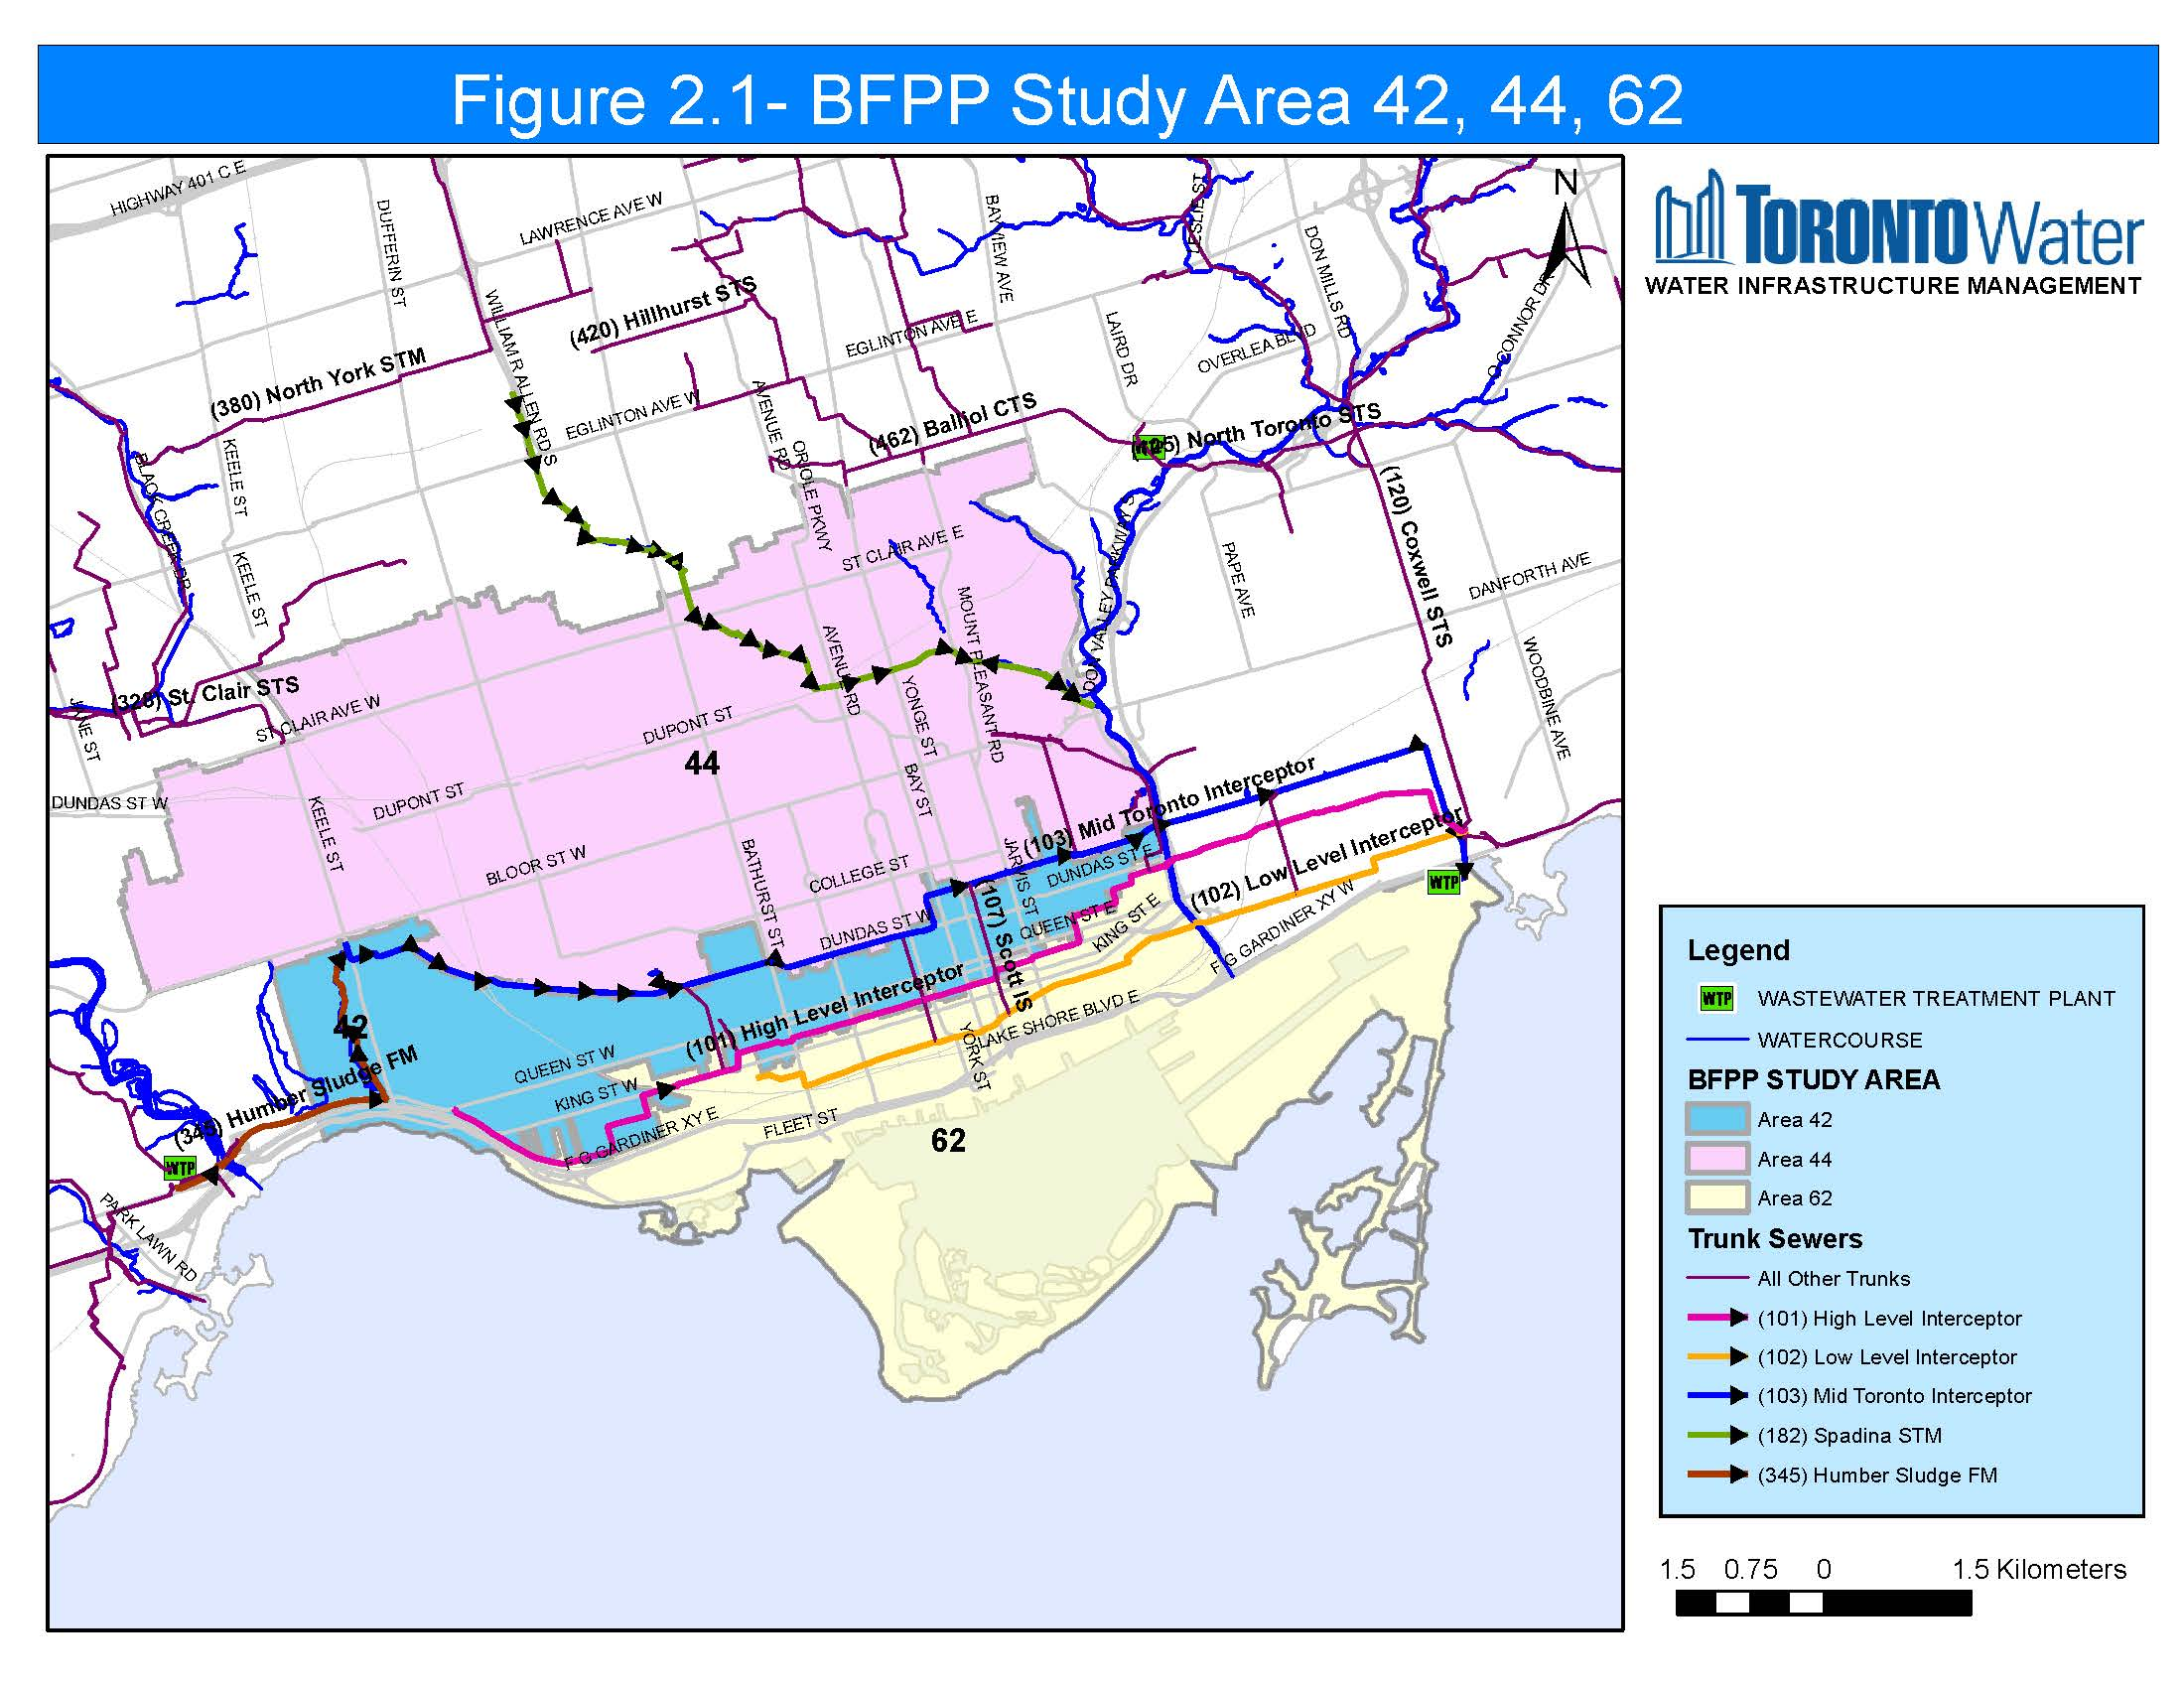 Map of Basement Flooding Areas 42, 44 and 62 and locations of storm sewer interceptors in the study area. If you need help reading this map, contact the Public Consultation Unit at floodingstudy@toronto.ca or 416-392-8210.